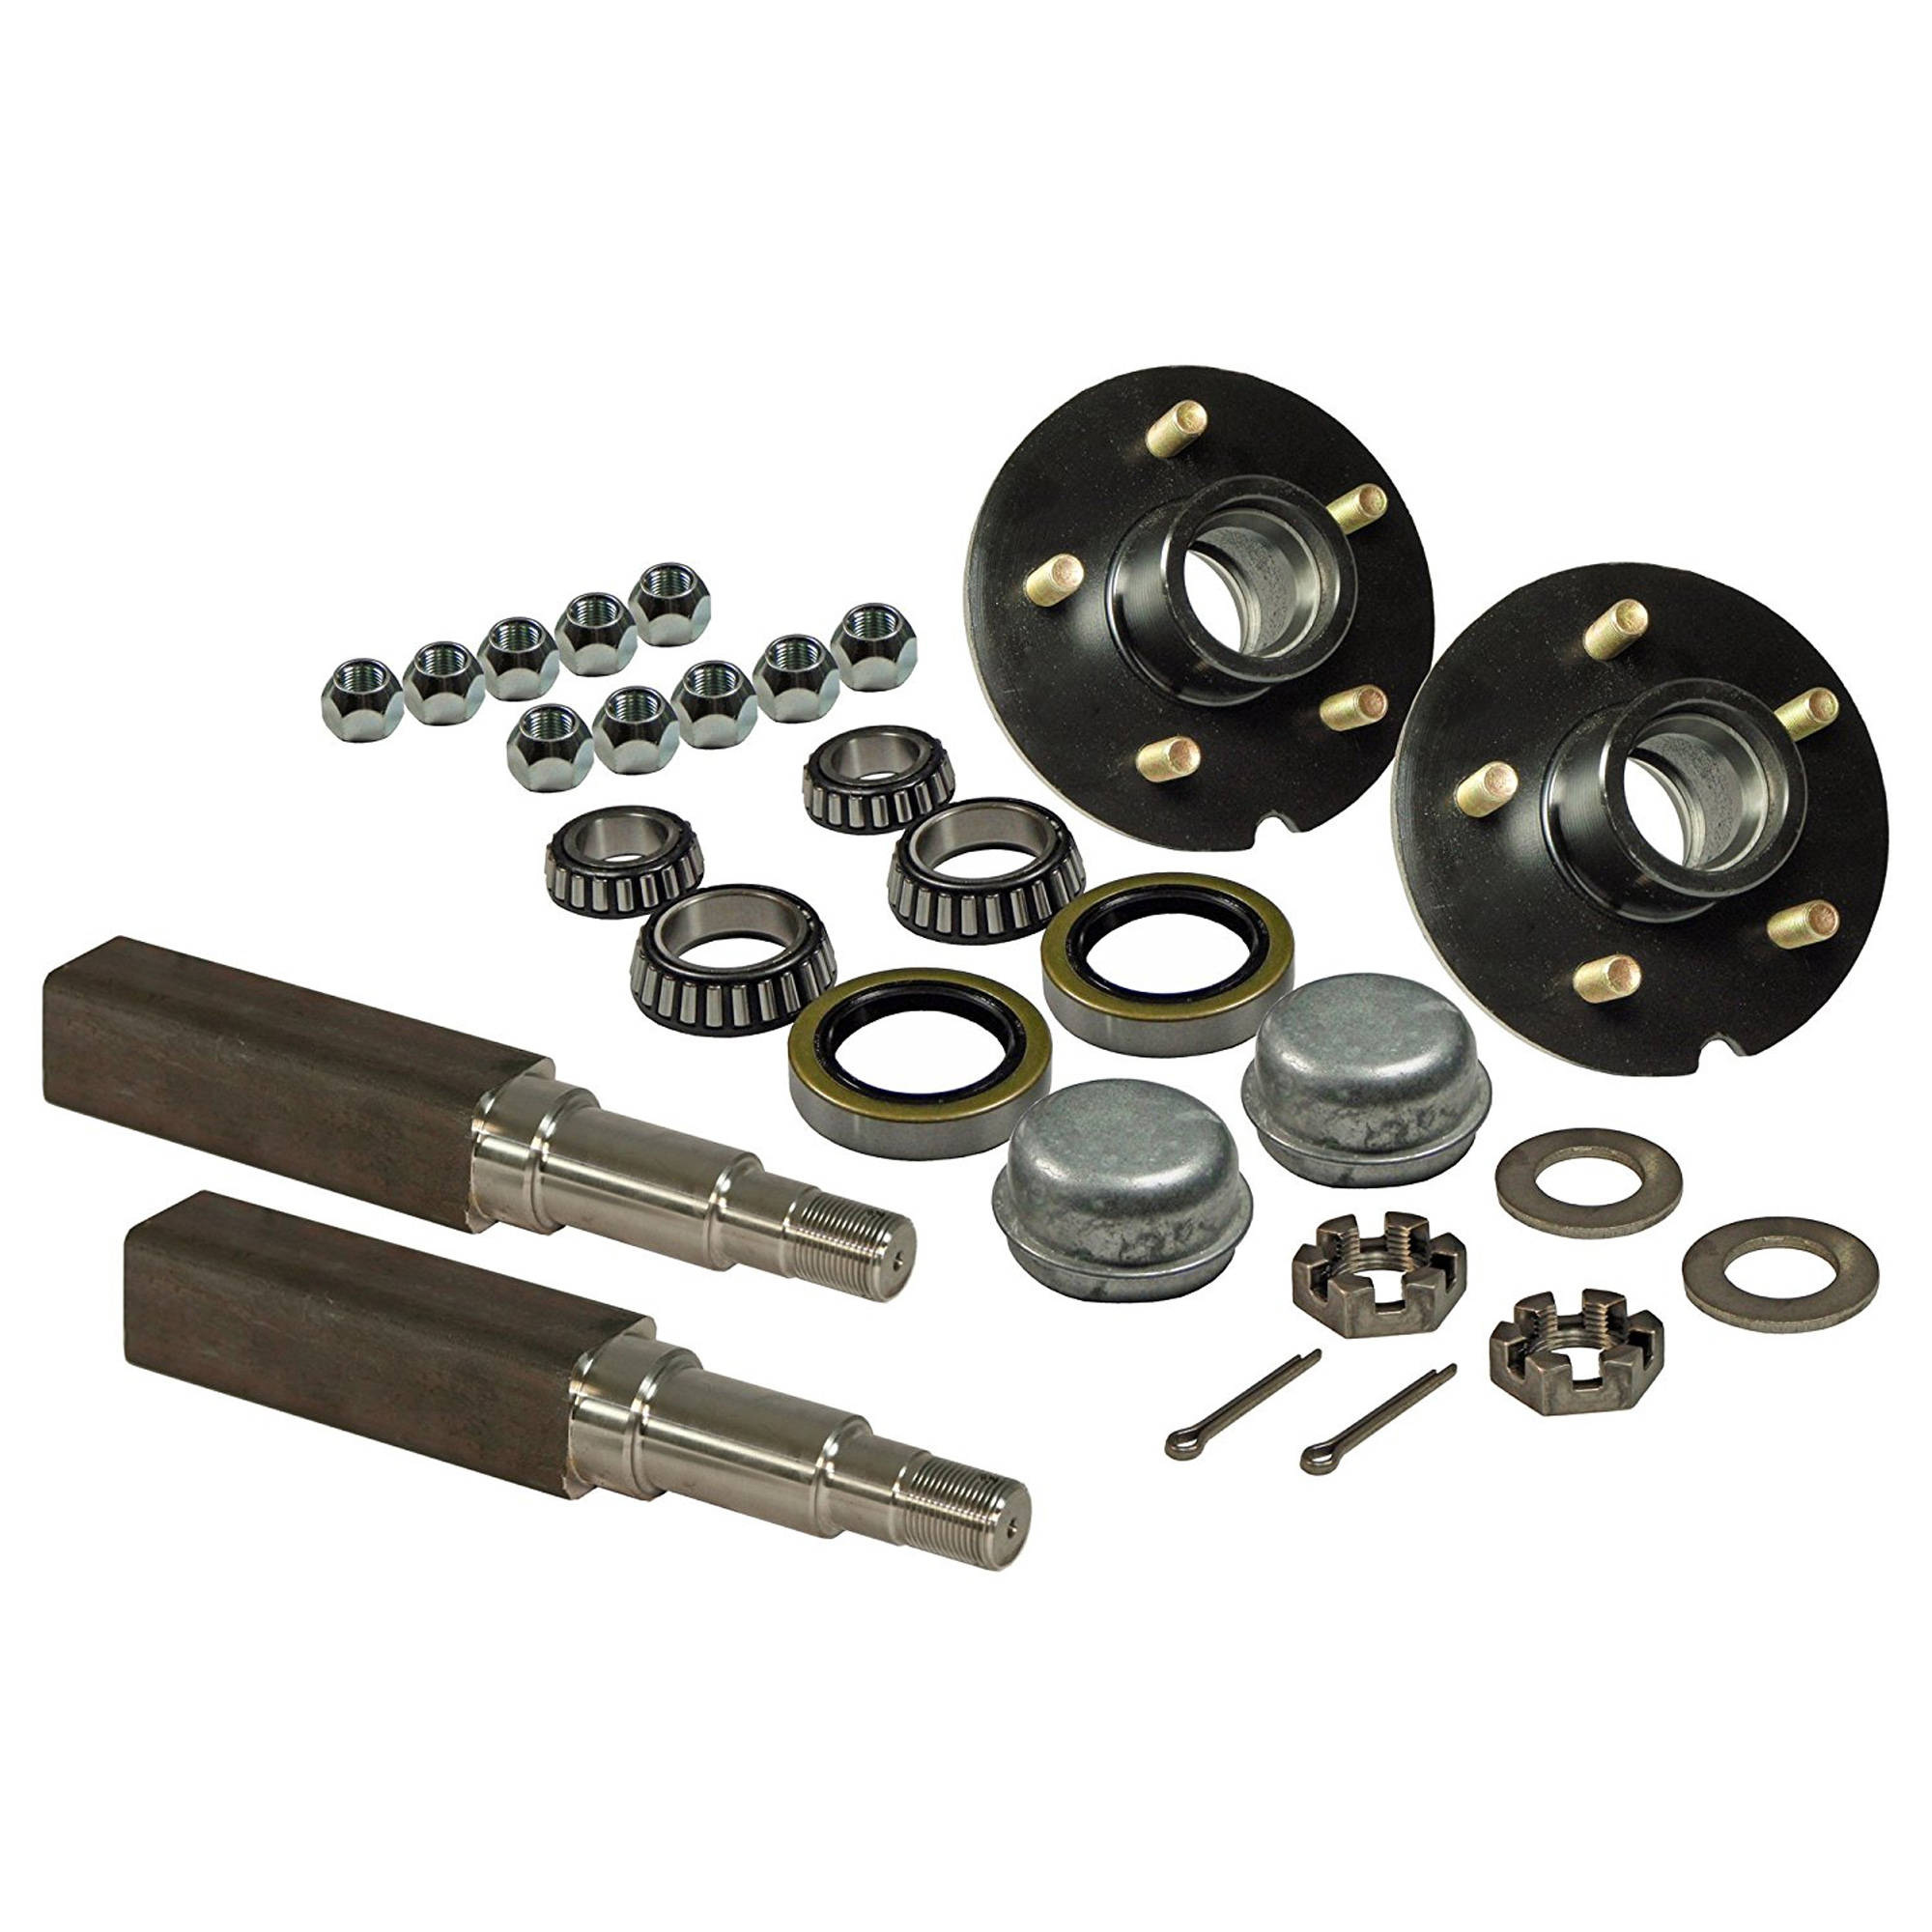 Pair of 5-Bolt On 4-1/2 Inch Trailer Hub Assemblies - Includes (2) Square Stock 1-3/8 Inch To 1-1/16 Inch Tapered Spindles & Bearings